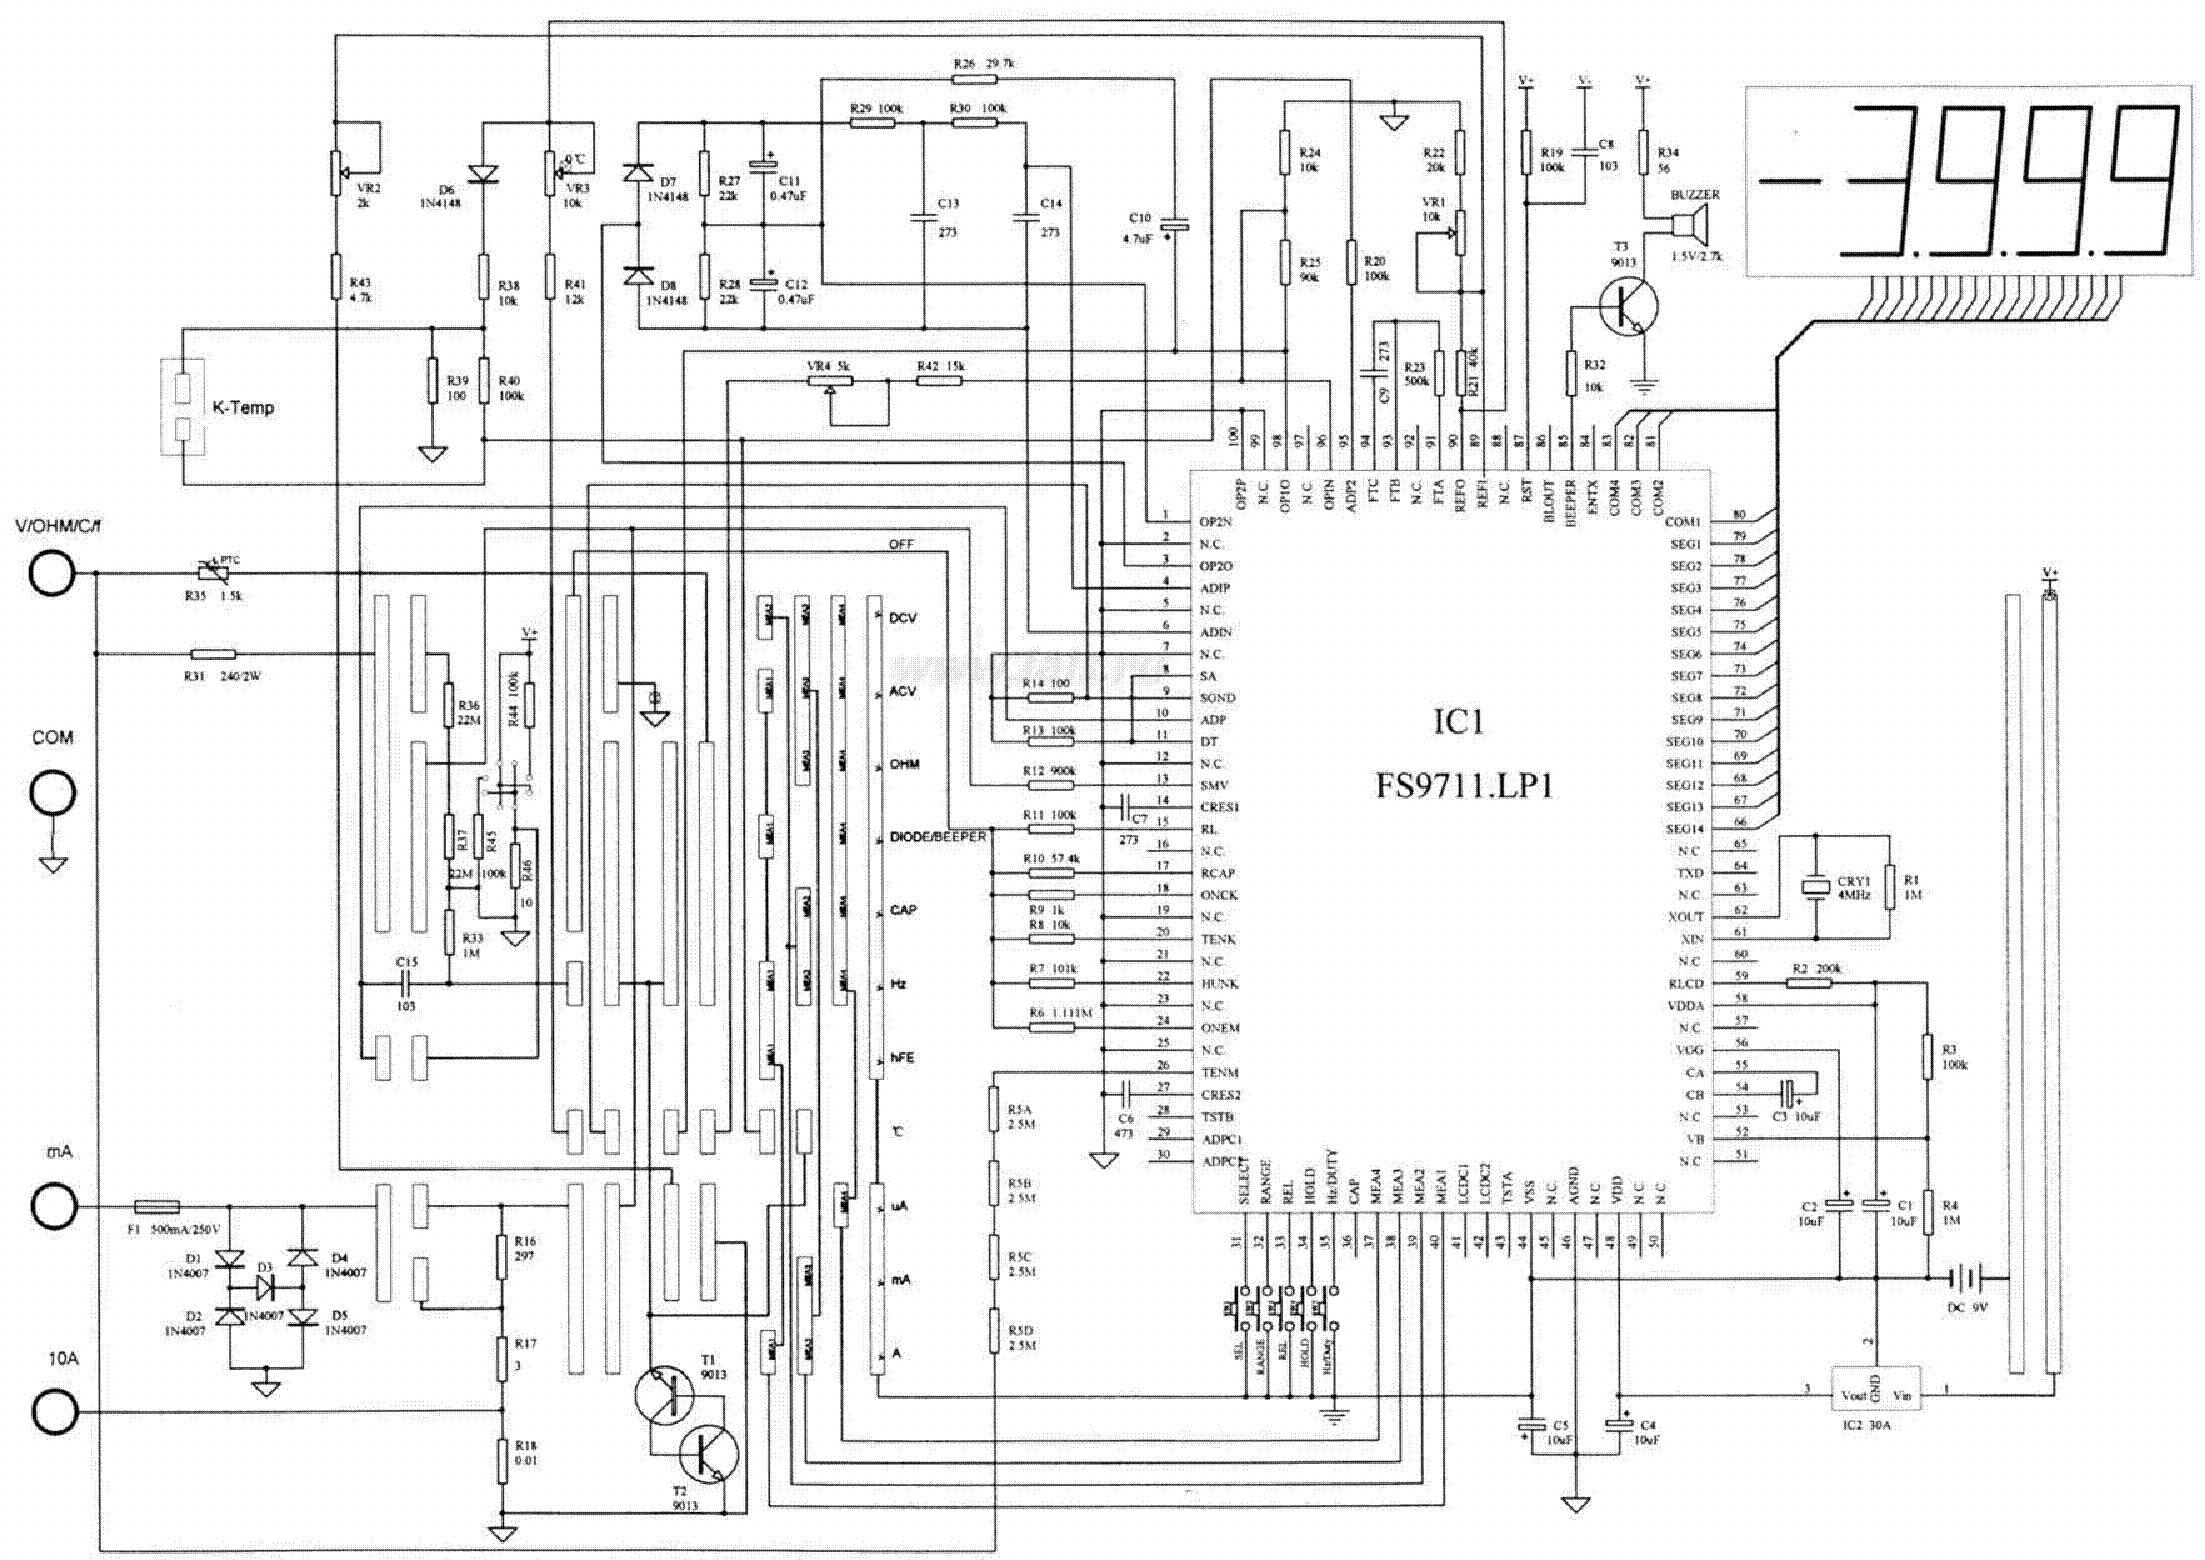 MULTIMETER VC97 SCH Service Manual download, schematics